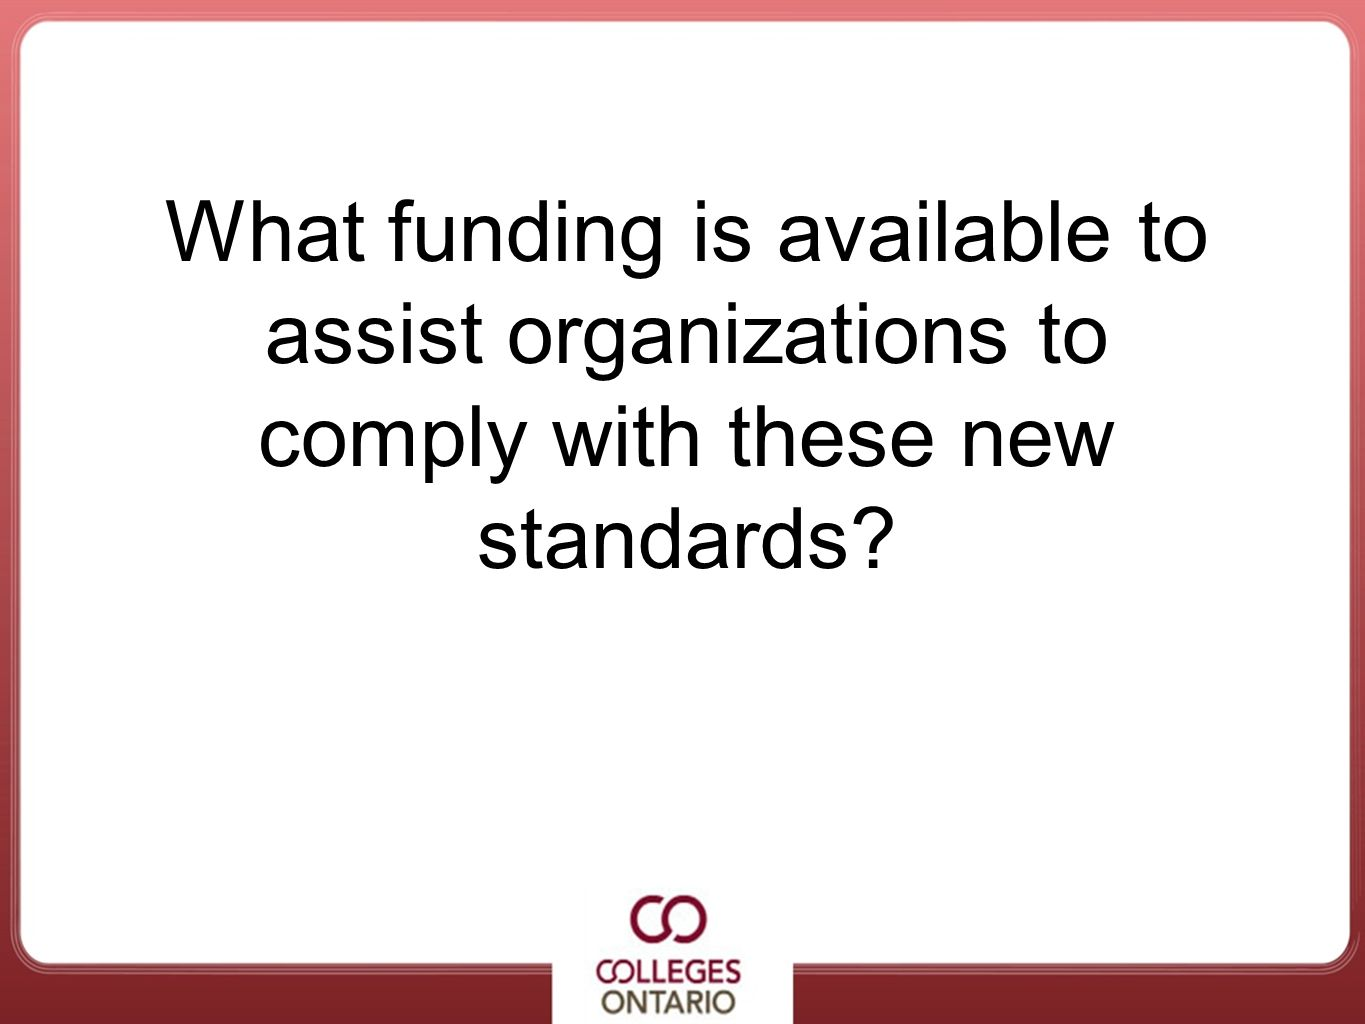 What funding is available to assist organizations to comply with these new standards